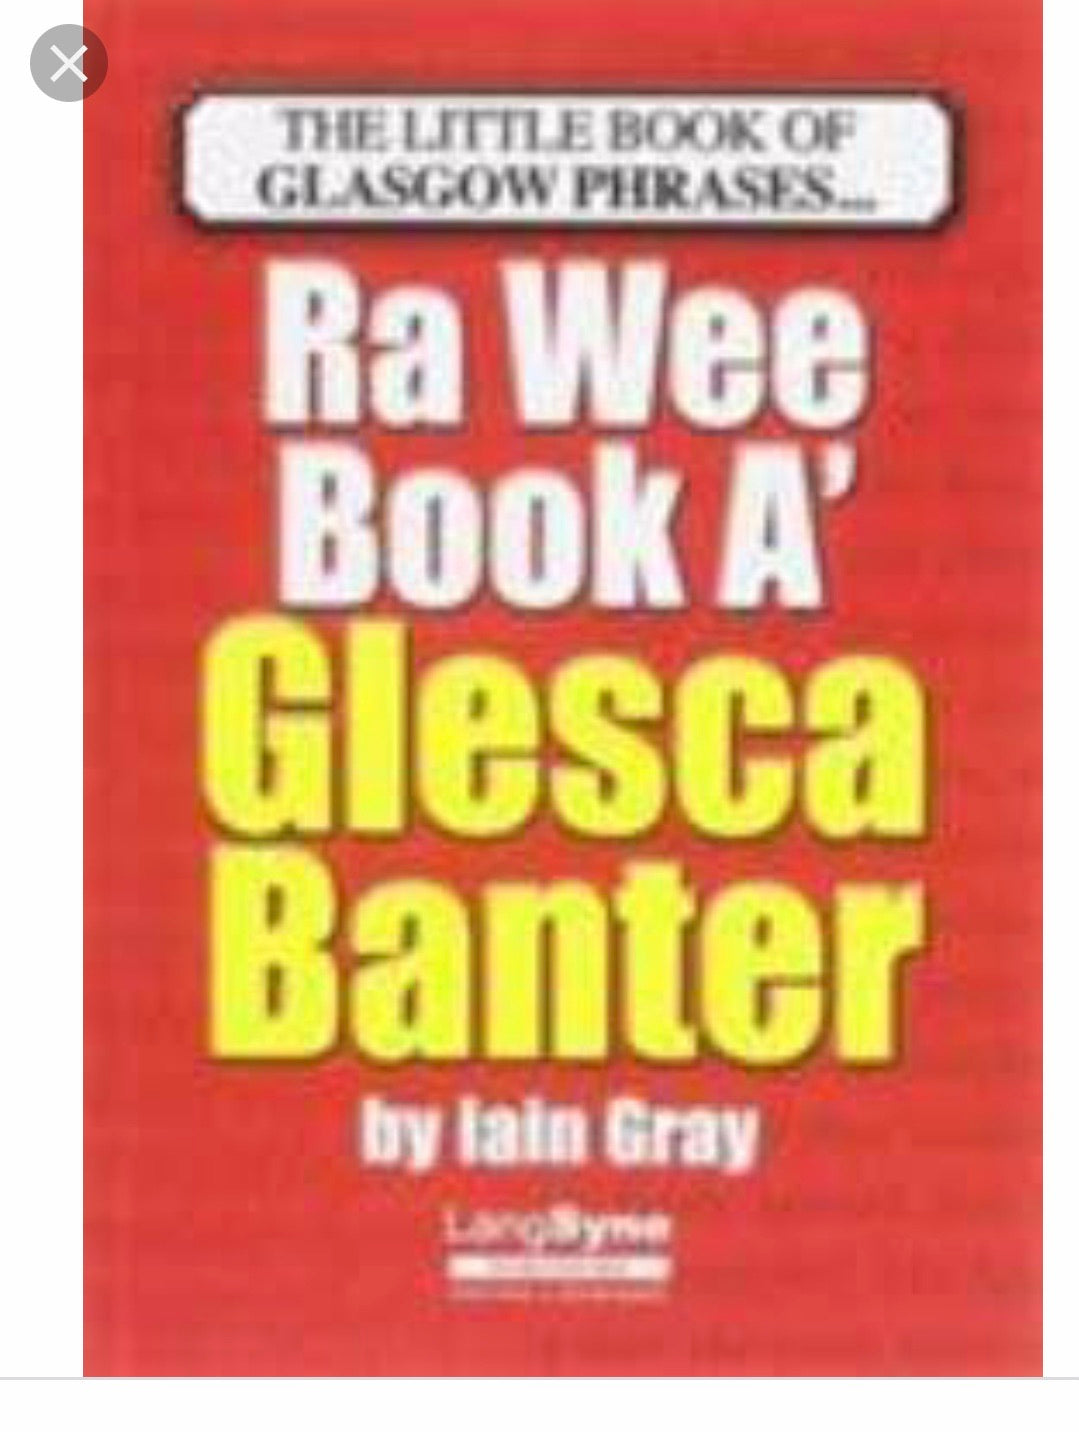 The Wee Book a Glesca Banter: An A-Z of Glasgow Phrases